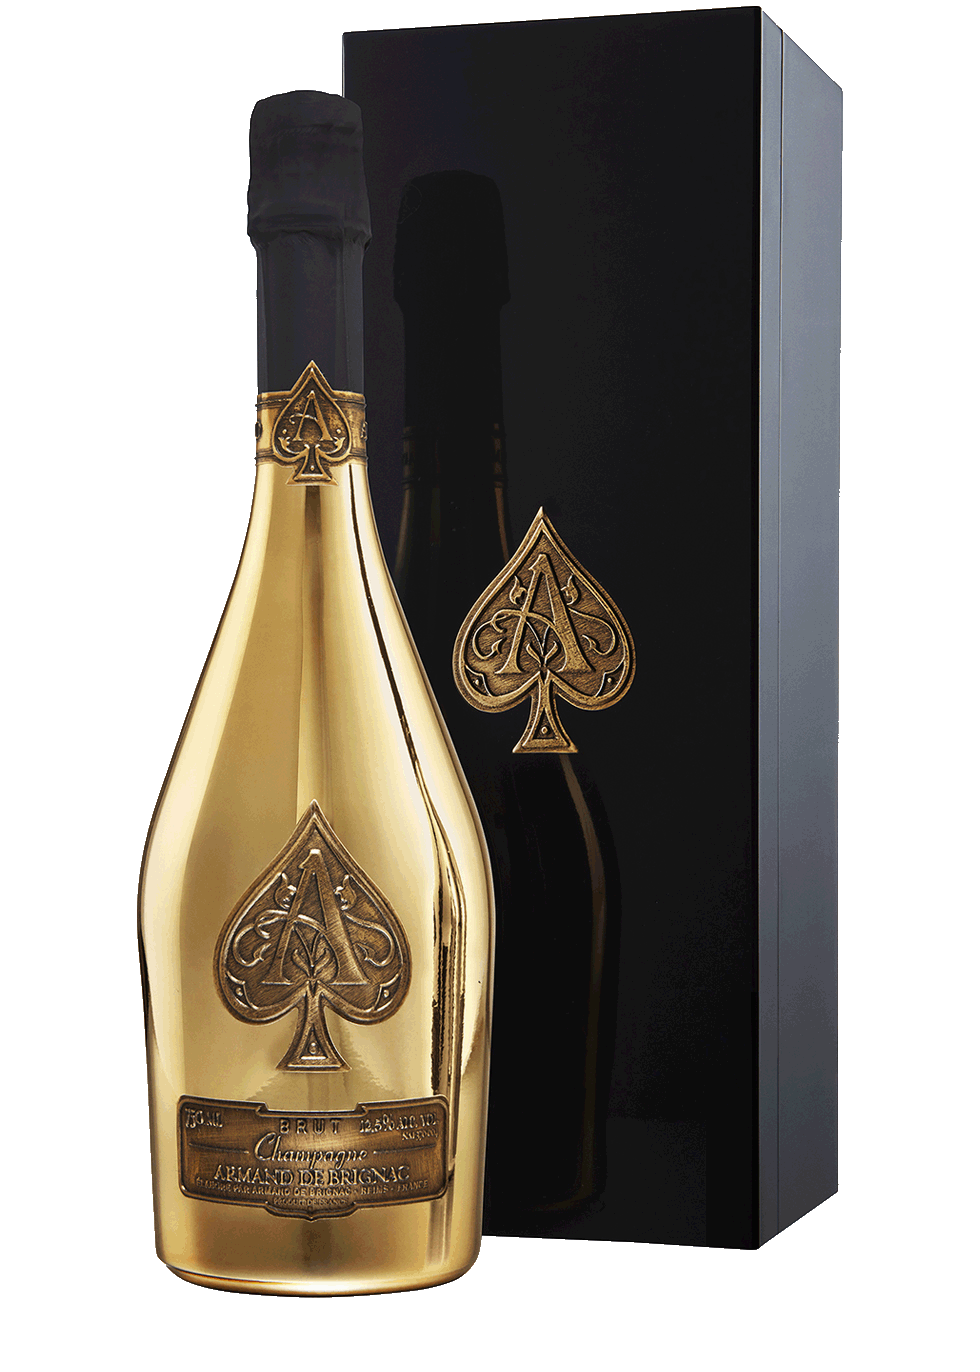 Harvey_Nichols_Mancester_Armand_De_Brignac_Ace_of_Spades_Gold_Brut_Champagne_?340_avialble_instore_and_online.png